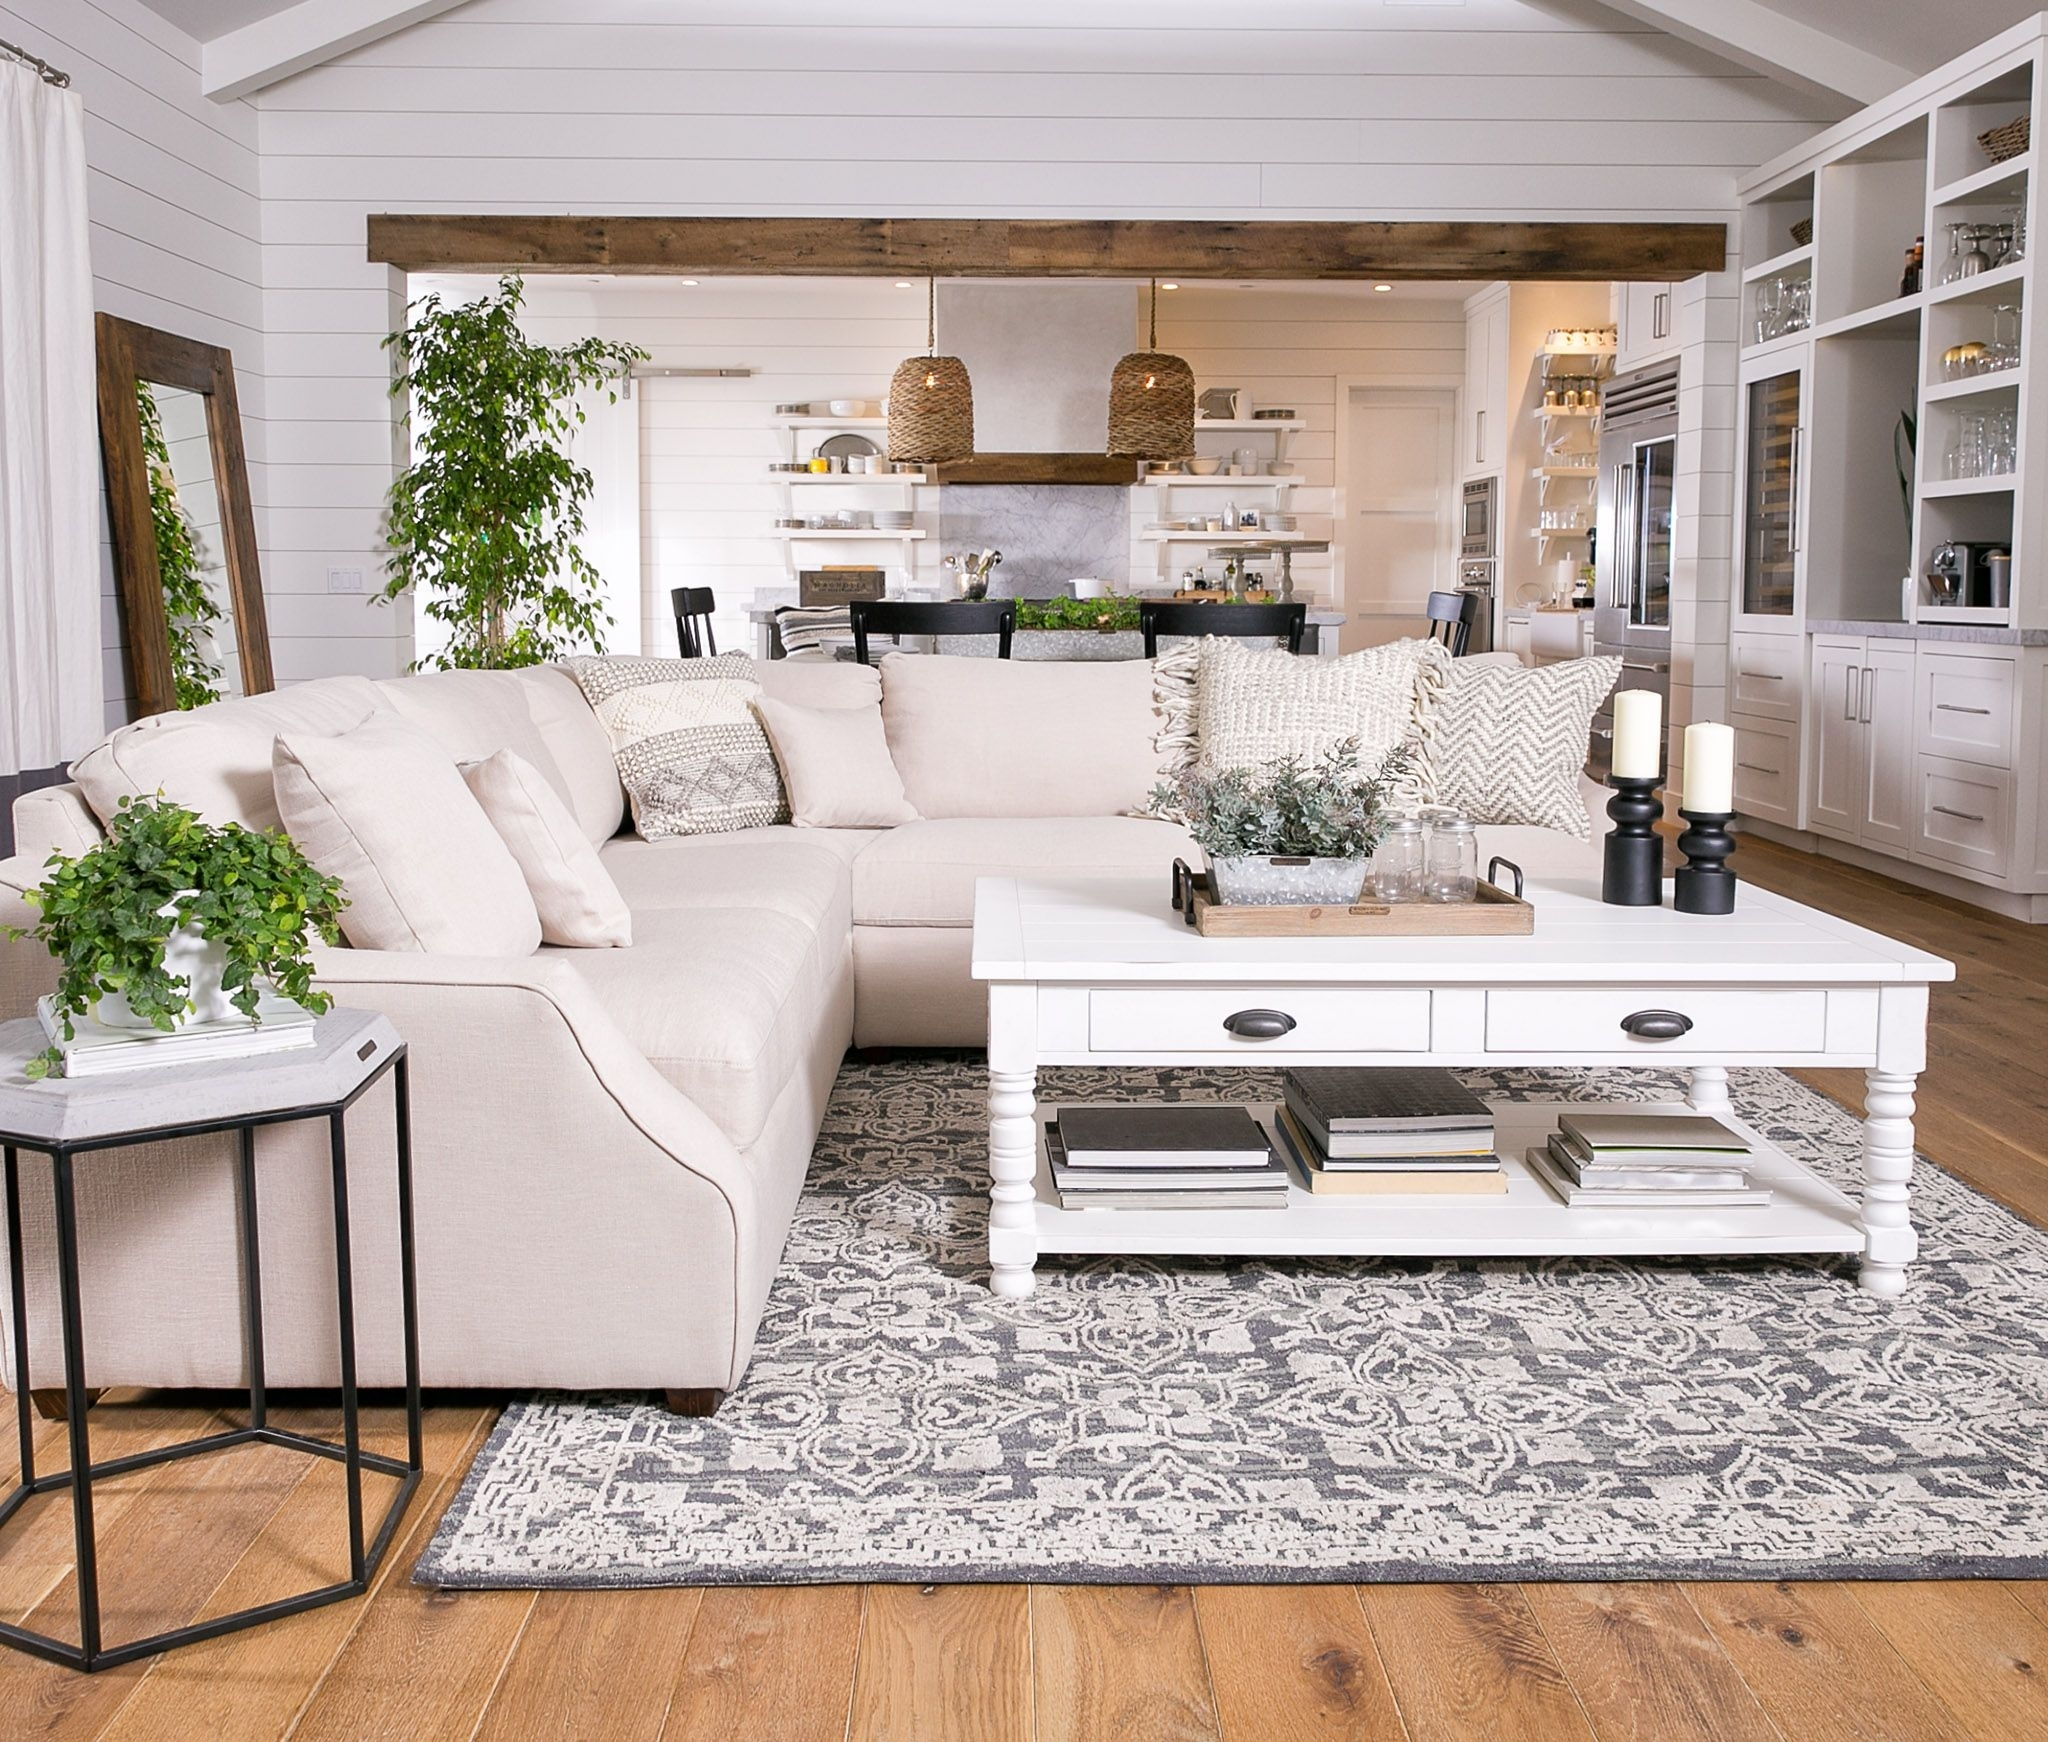 Magnolia Home Homestead 3 Piece Sectionaljoanna Gaines Intended For Magnolia Home Homestead 4 Piece Sectionals By Joanna Gaines (View 8 of 25)